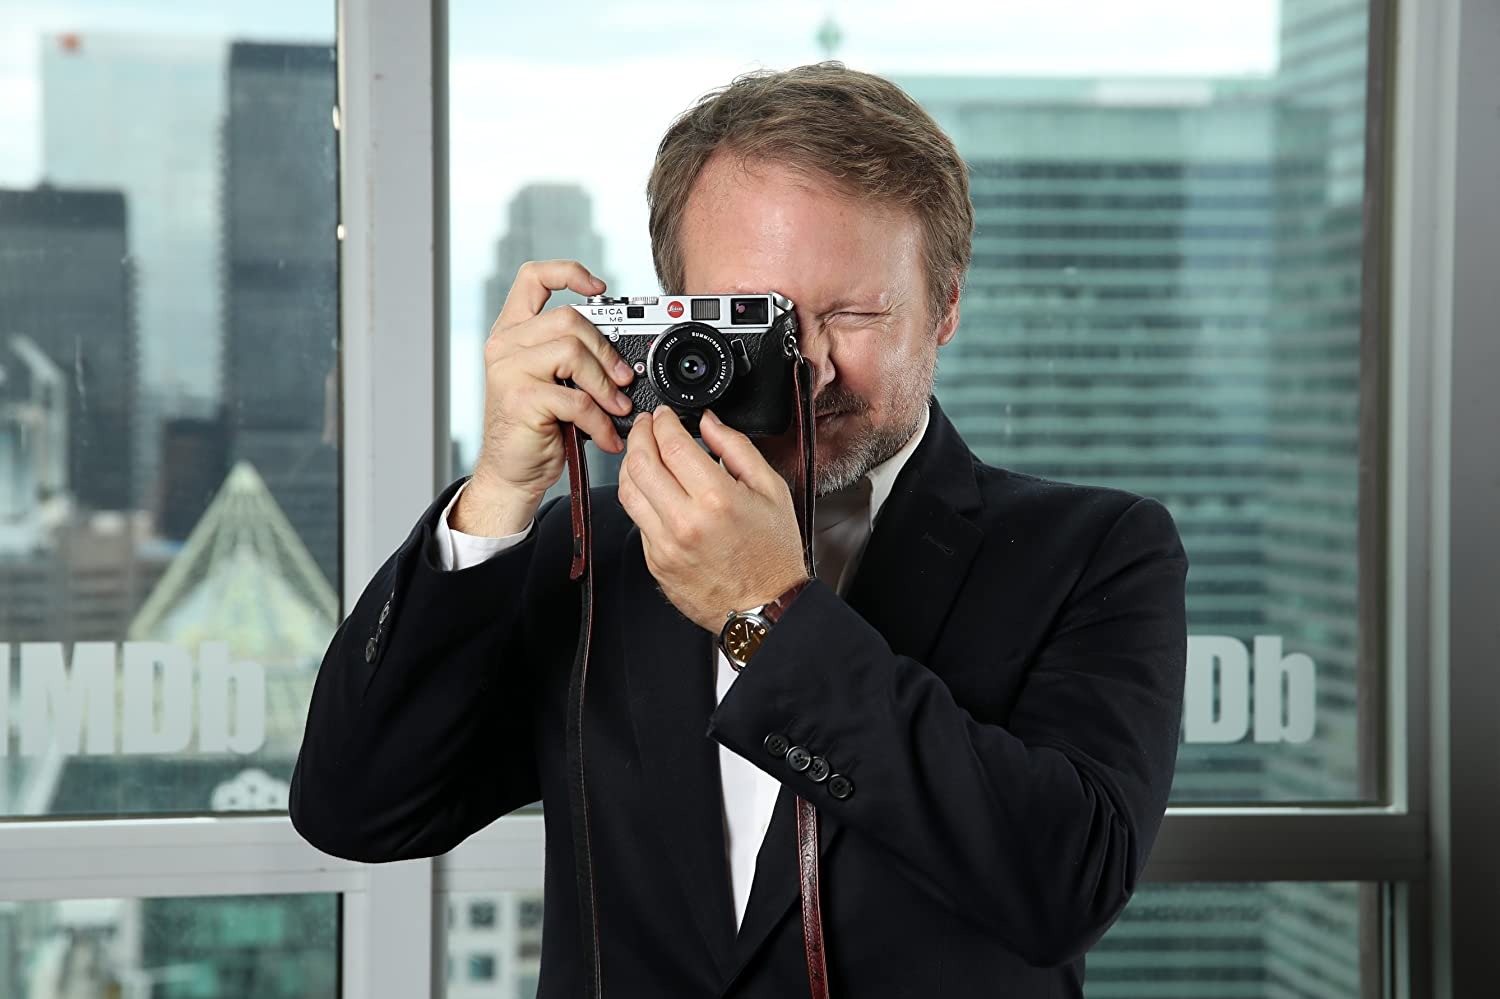 Rian Johnson at an event for Knives Out (2019)